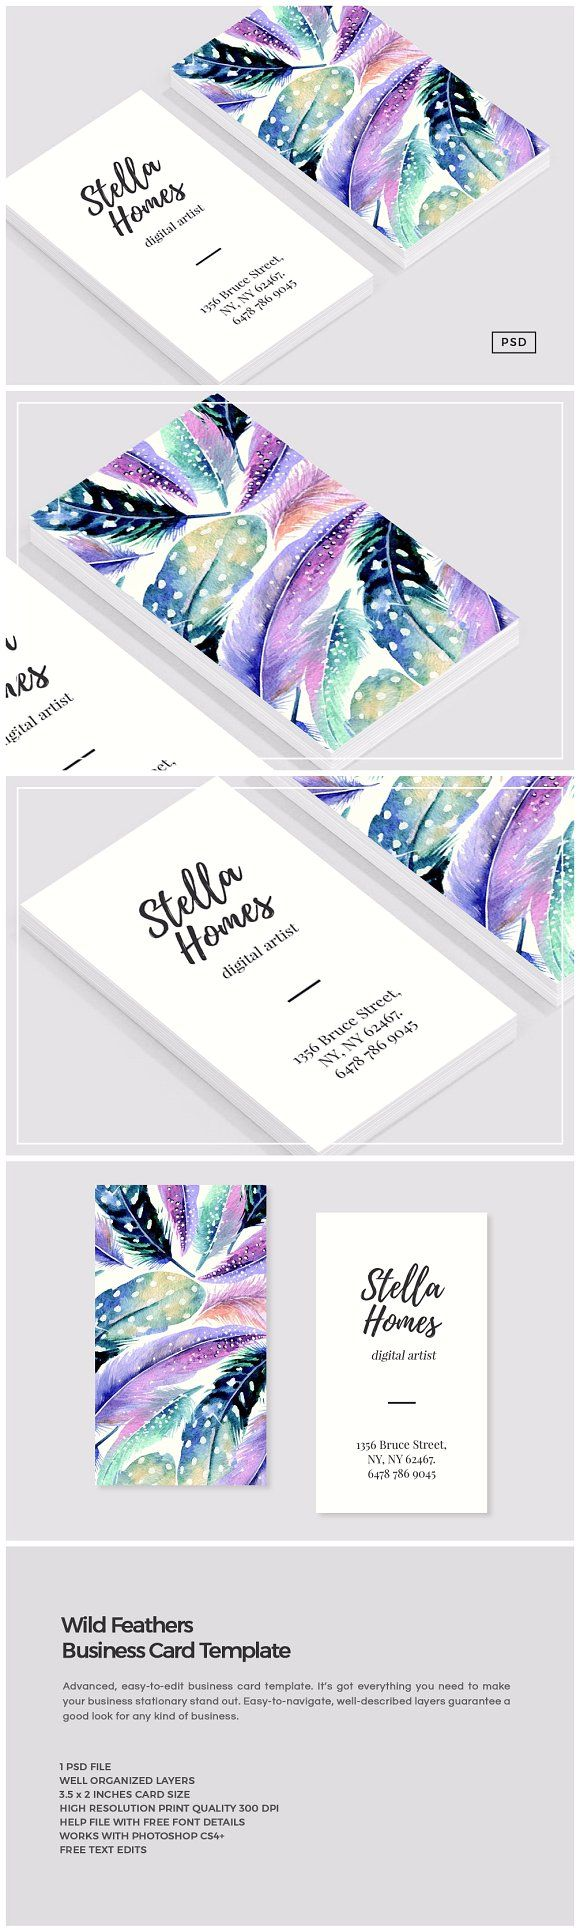 166 best business cards images on pinterest business card design wild feathers business card template by the design label on creativemarket reheart